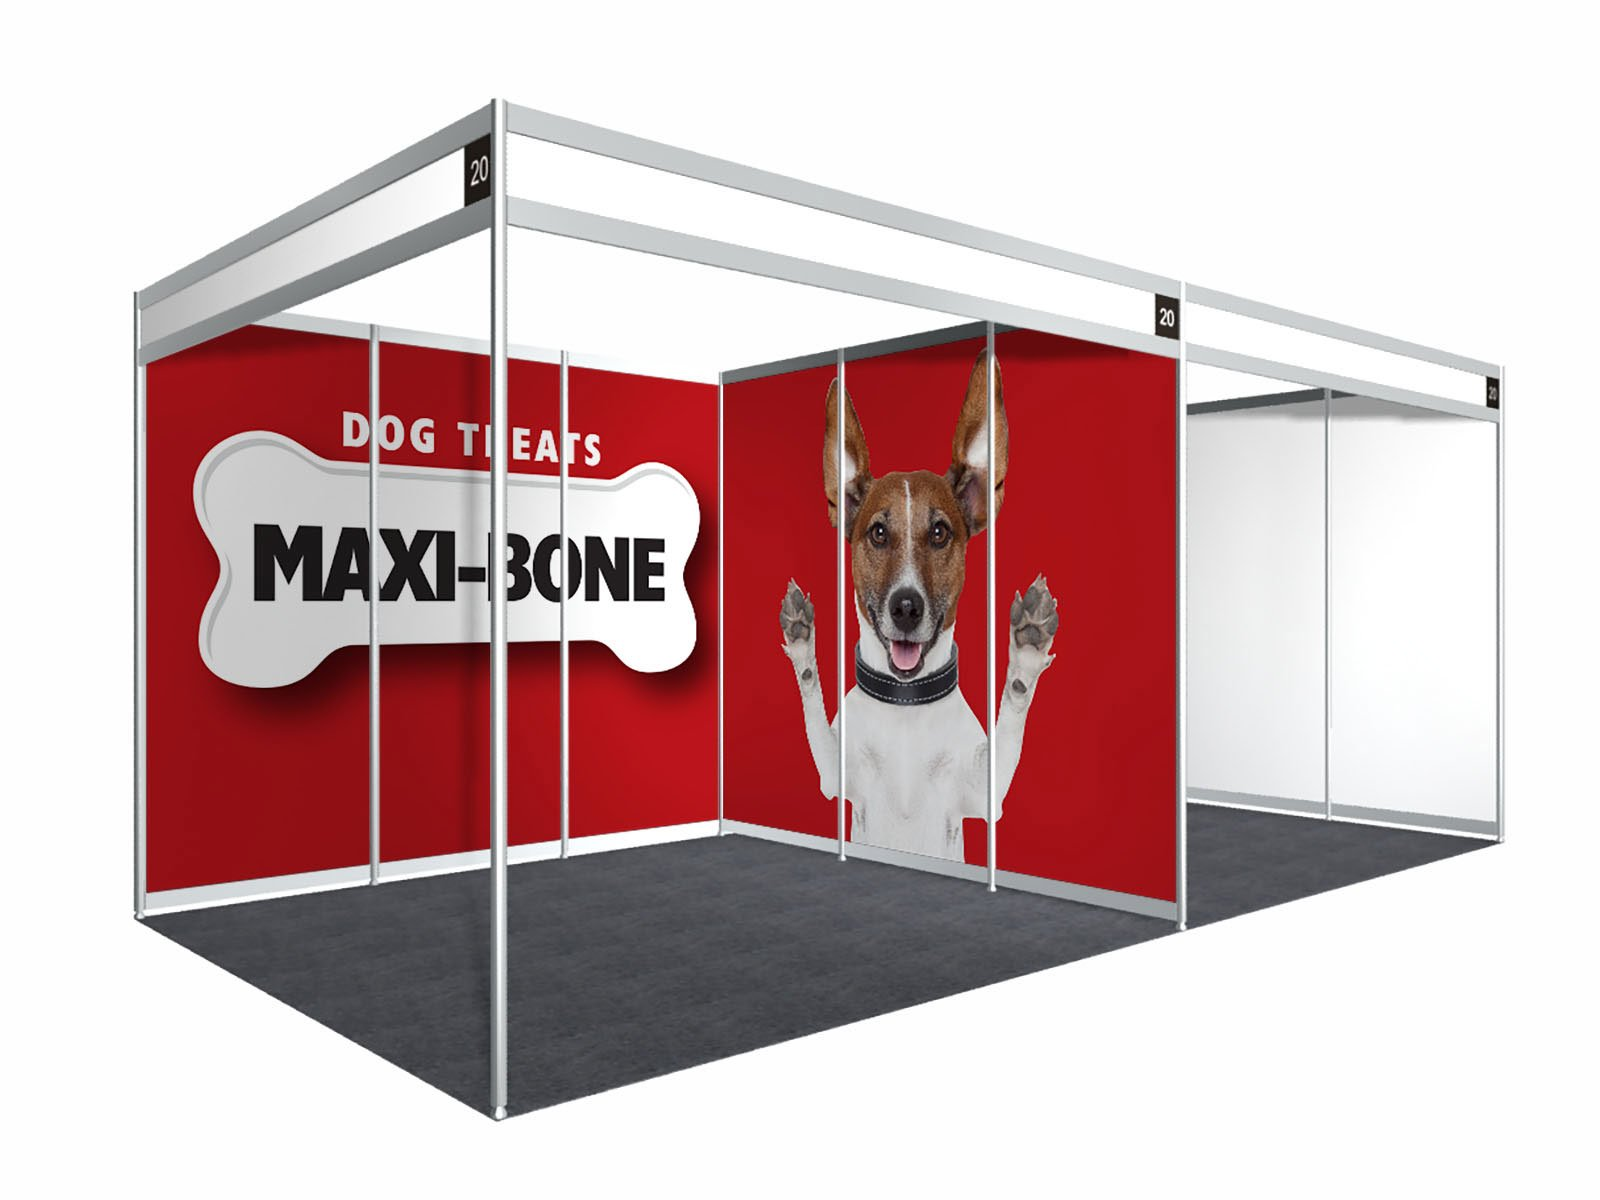 Exhibition Shell Scheme For Sale : Phototex shell scheme graphics enhance your exhibition stand